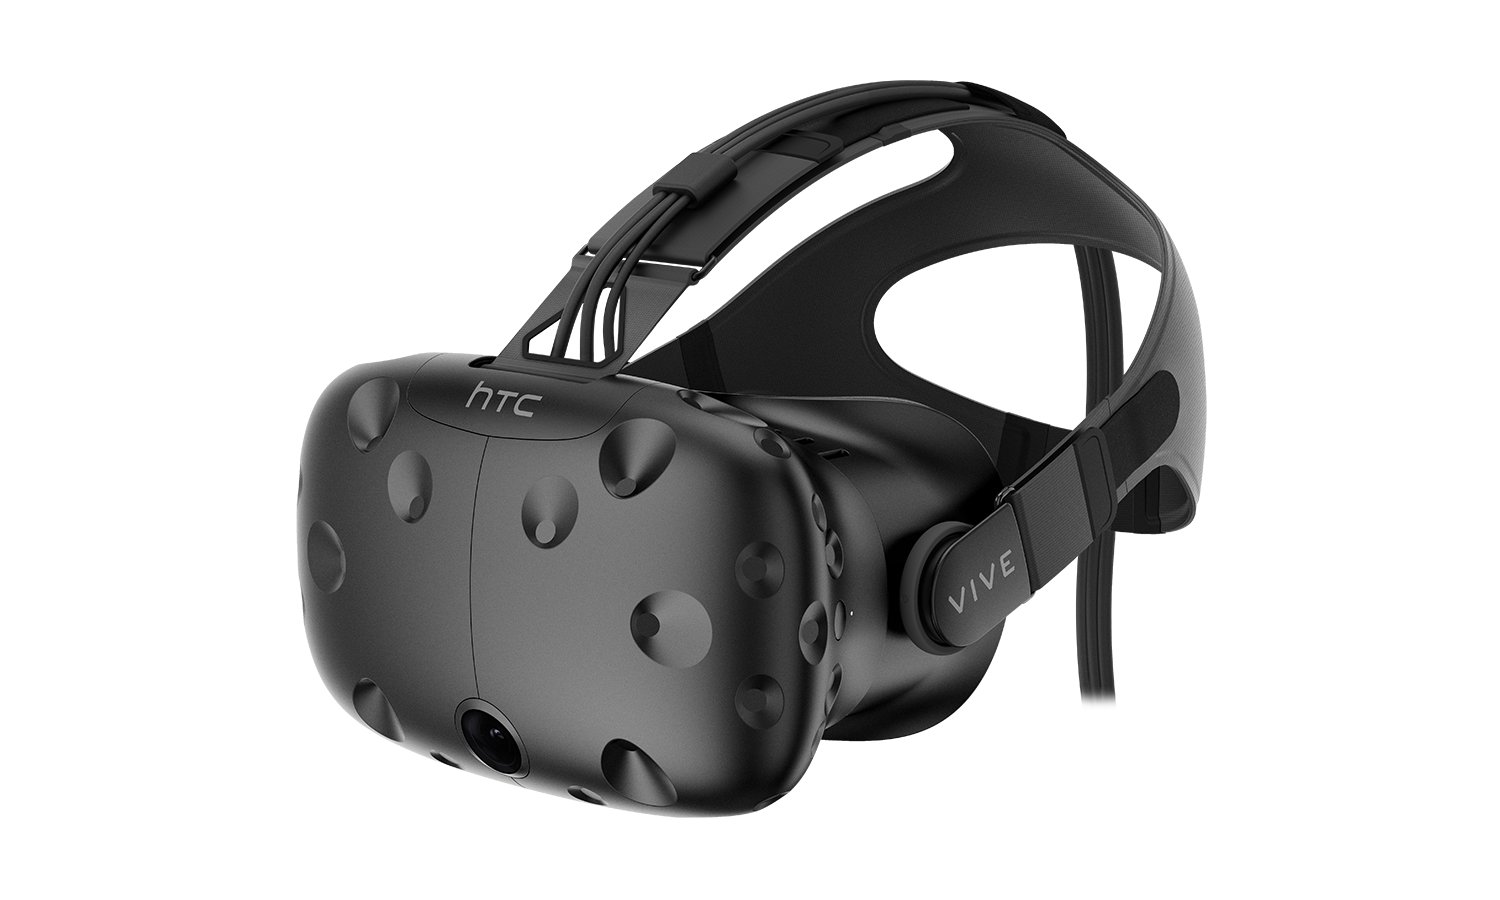 An HTC Vive Virtual Reality headset